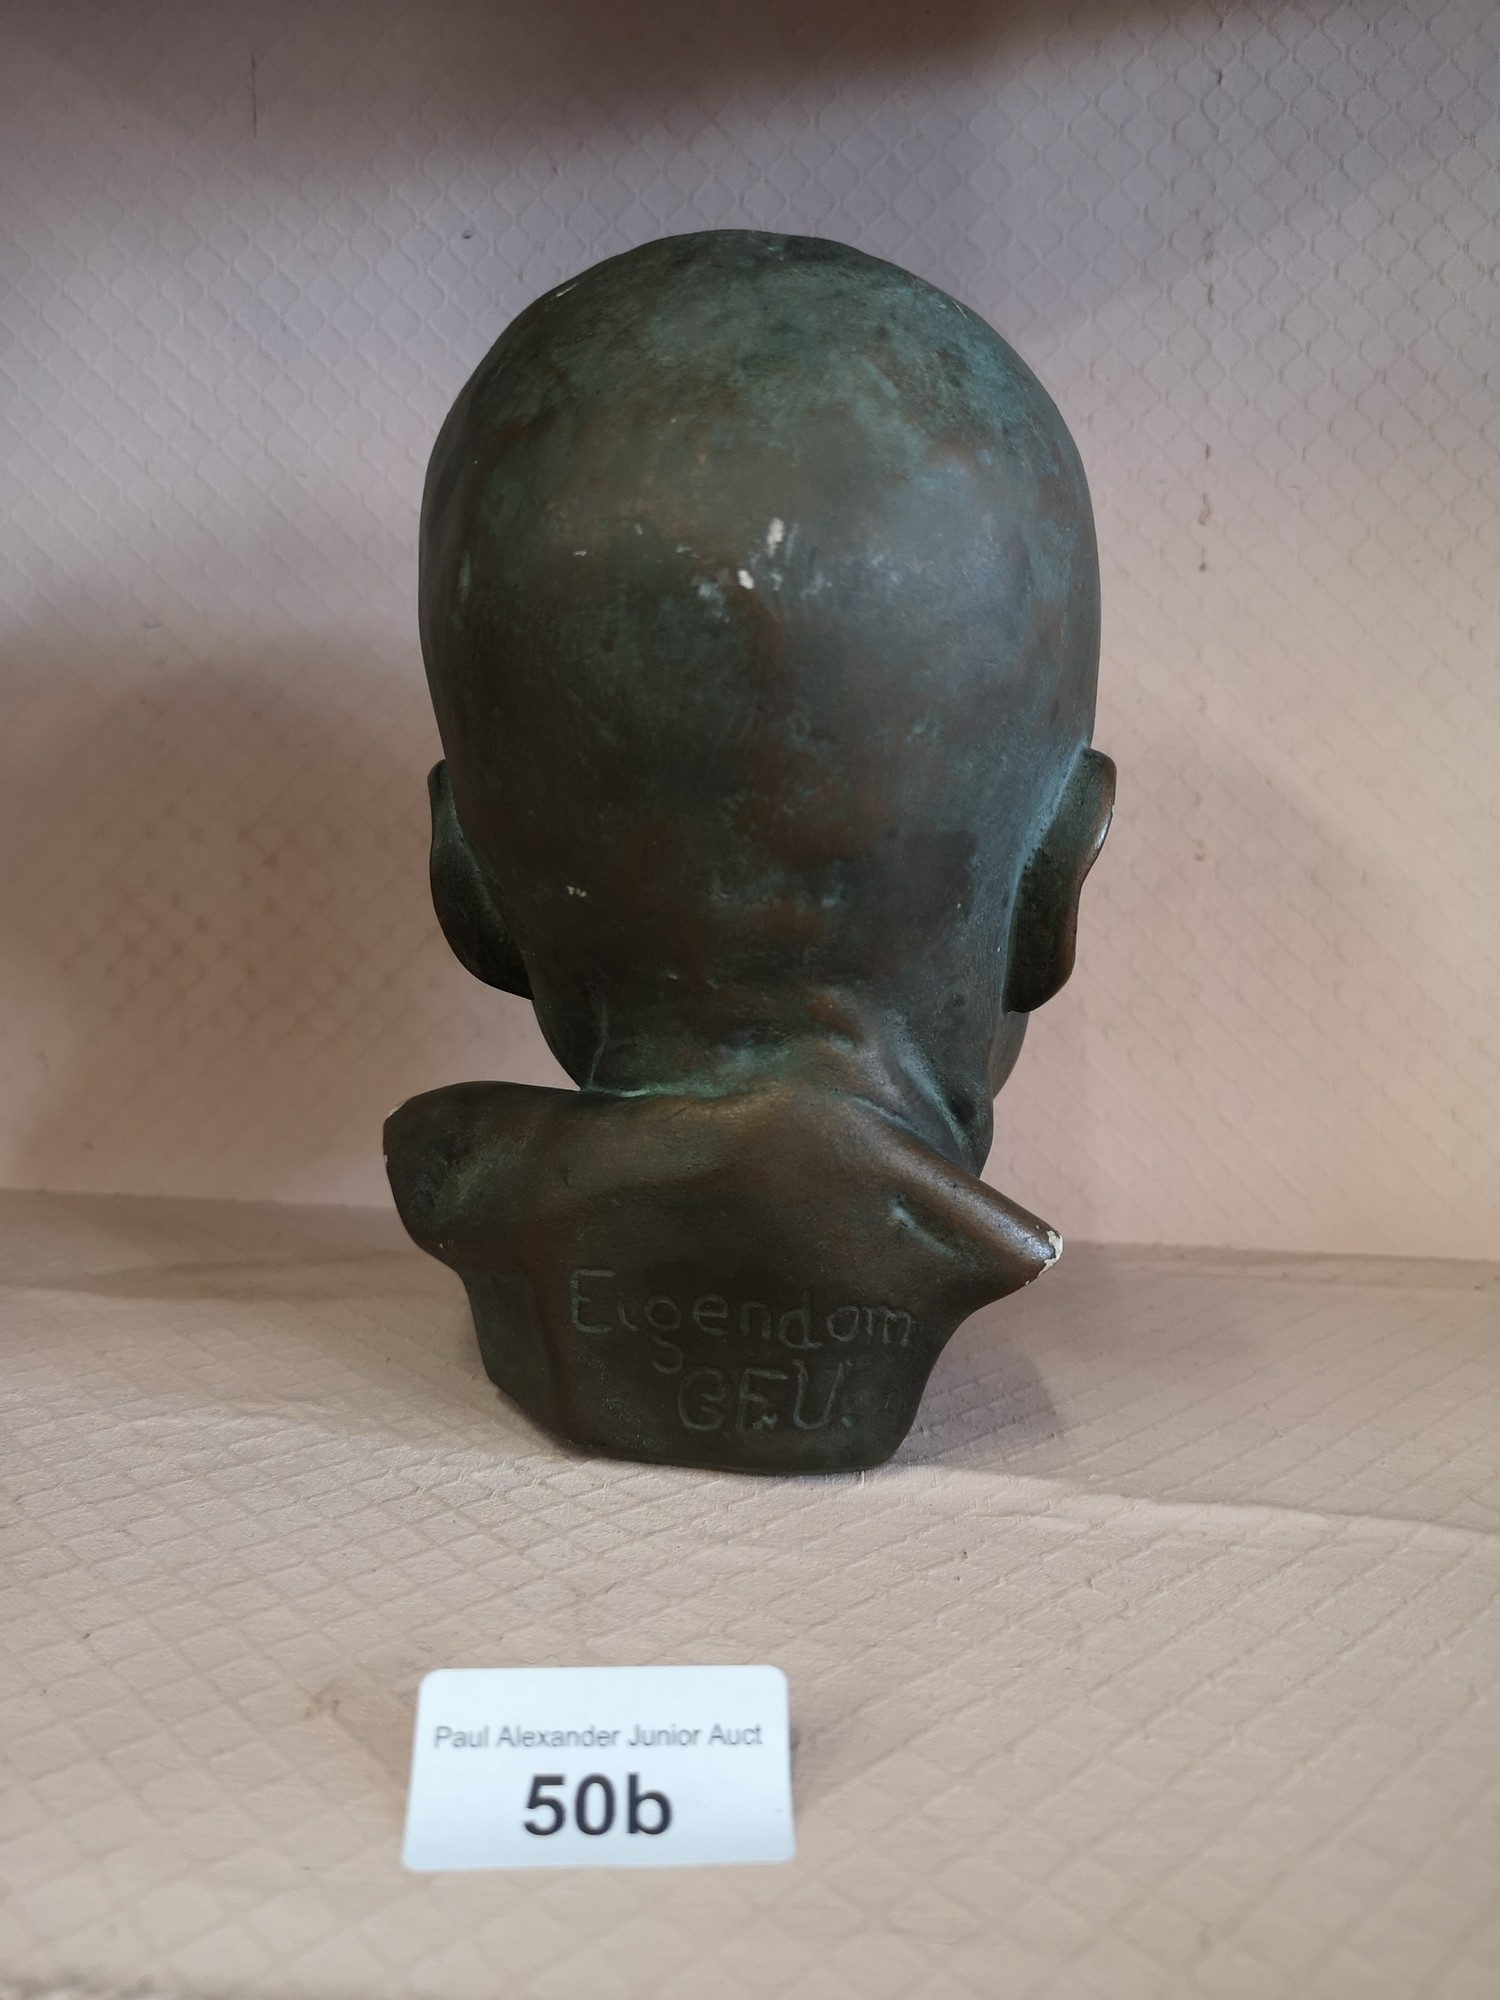 Eigendorn signed sculpture head with GFU intials. - Image 3 of 5